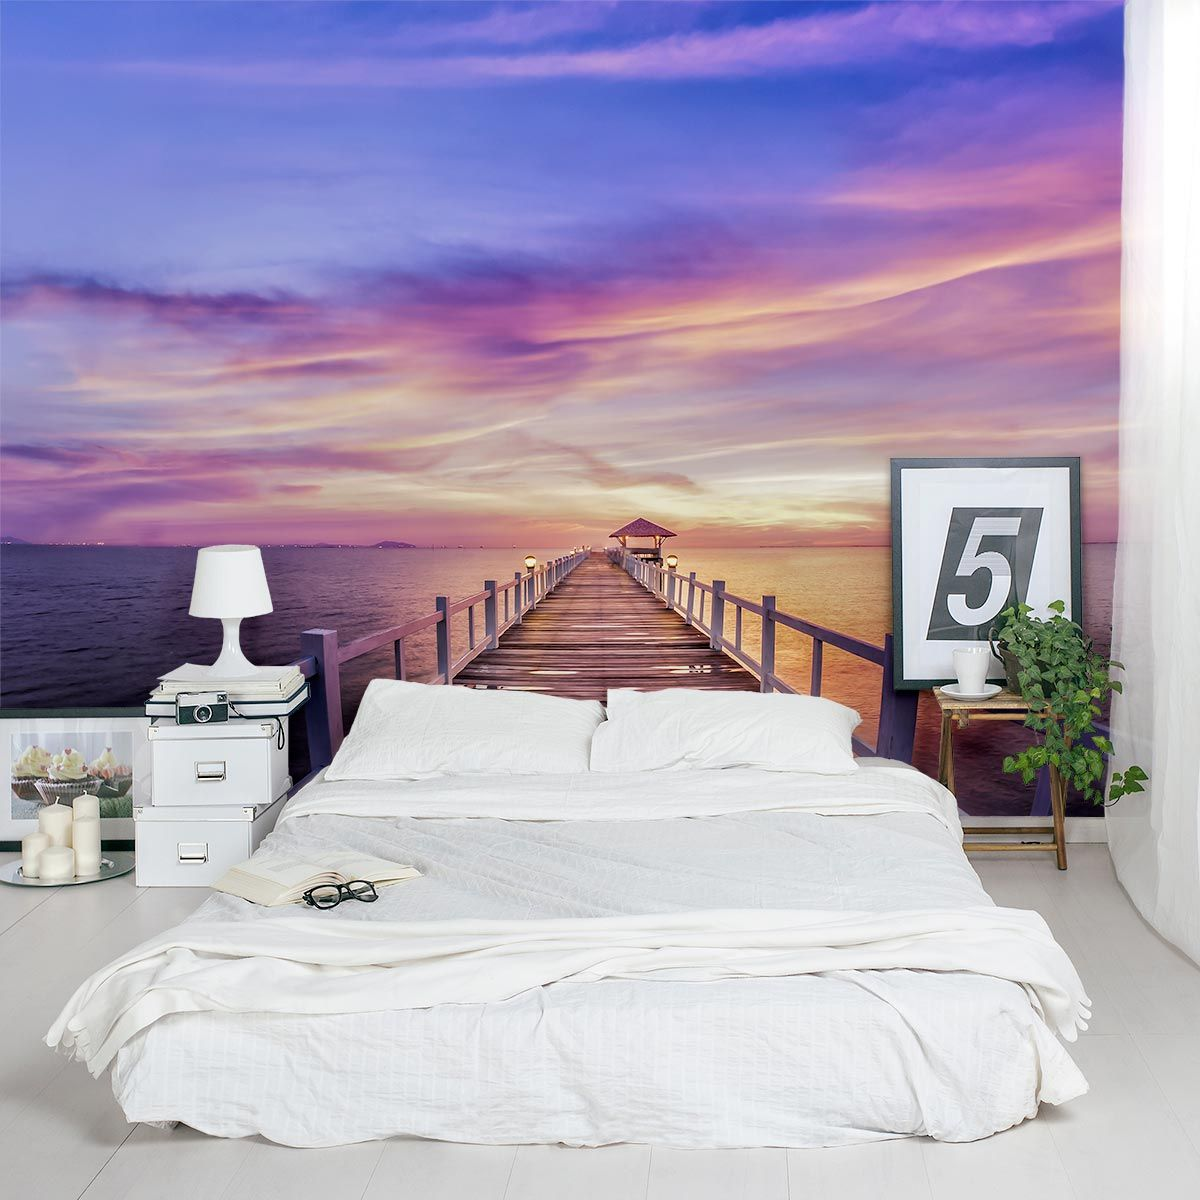 Marvelous Create Gorgeous Accent Walls With This Thailand Pier Sunset Wall Mural